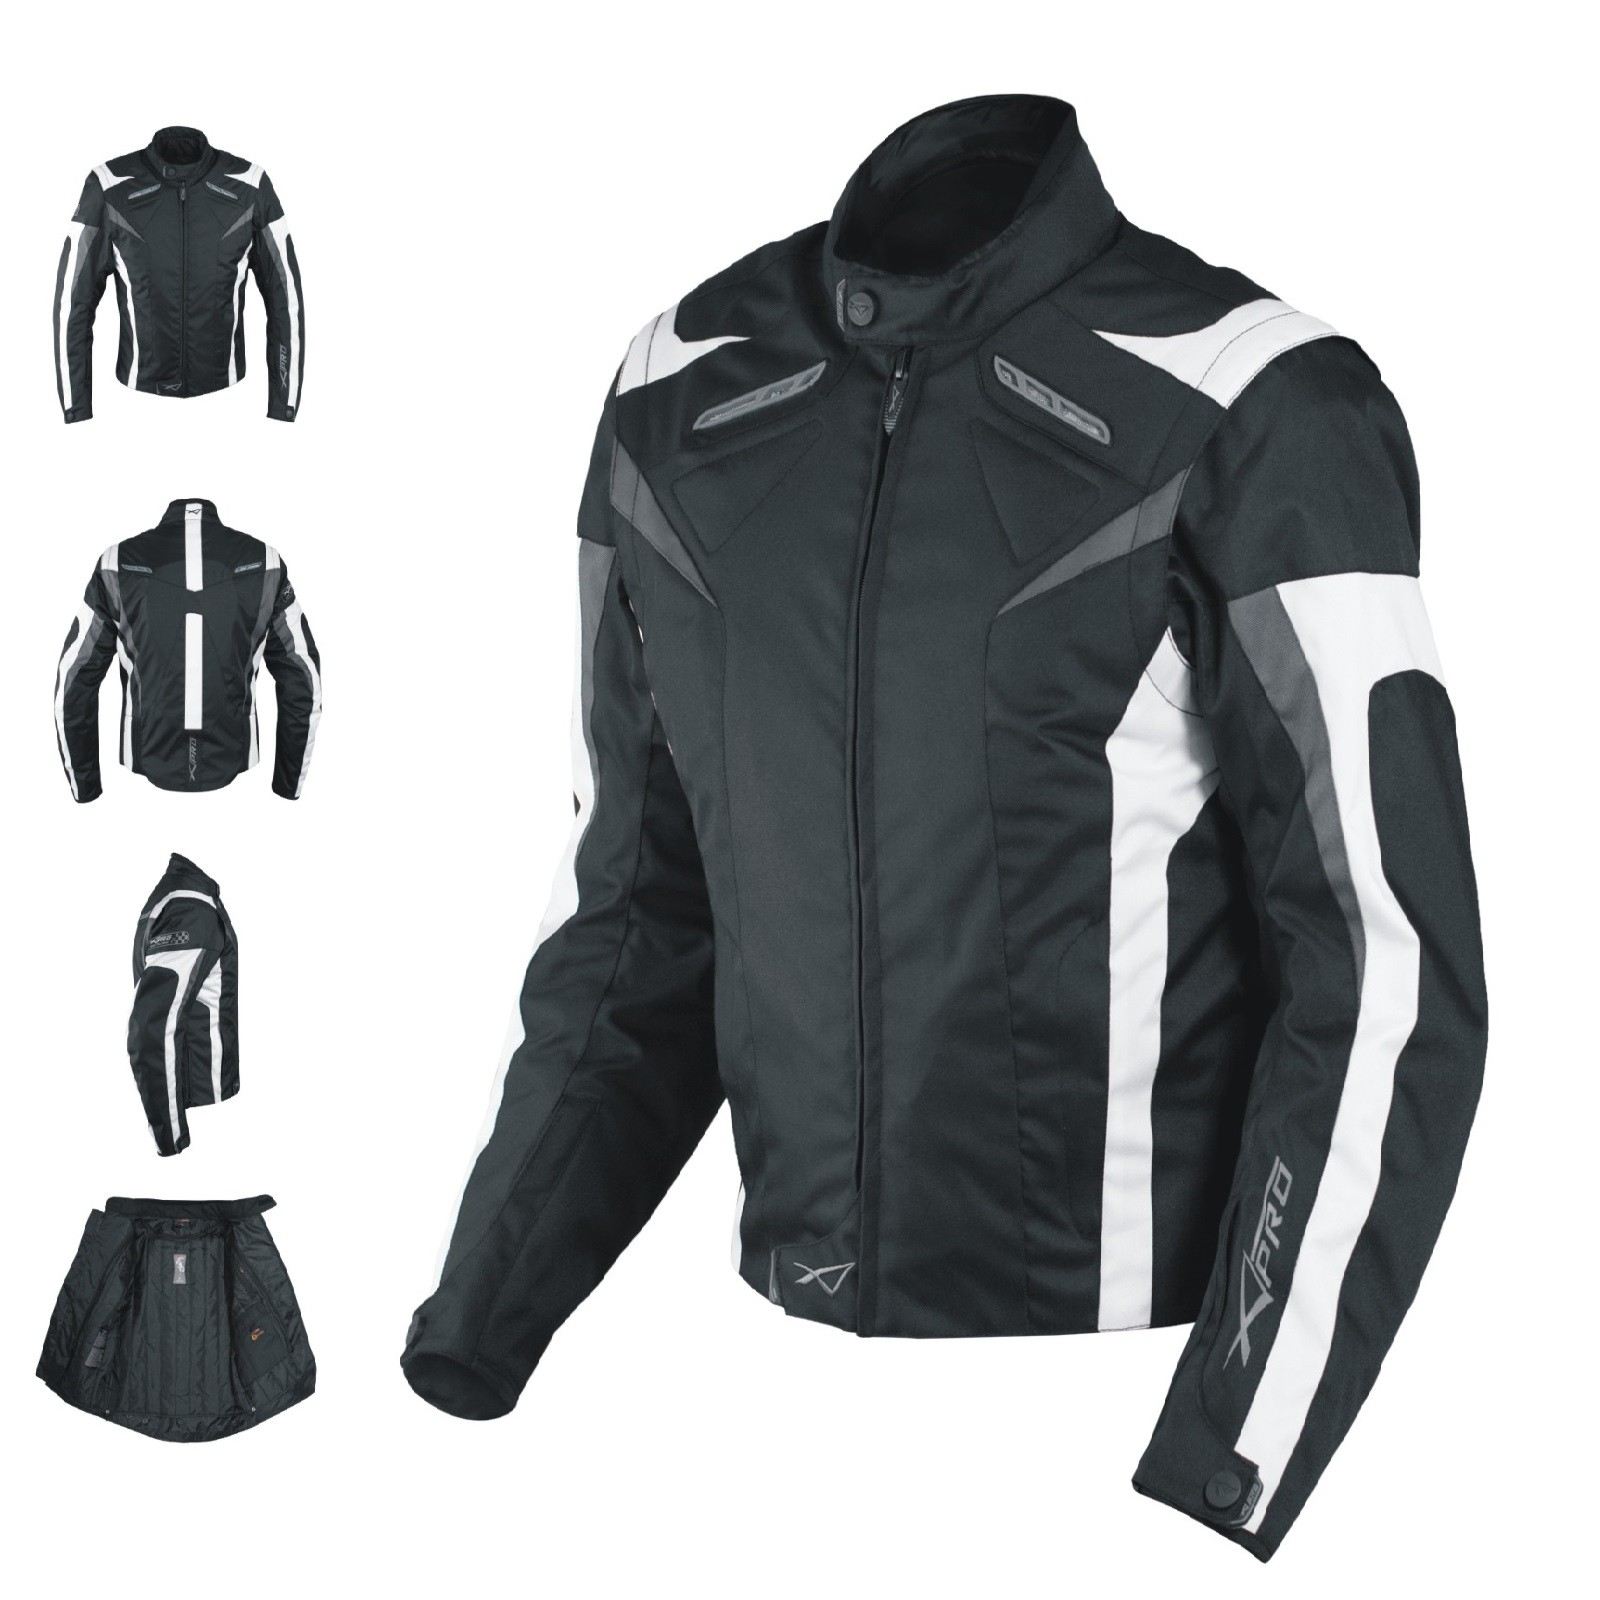 Hart-Lady_Donna-A-Pro-Giacca-Jacket-White-Bianco-Moto-Motorcycle-Sonic-Moto.jpg